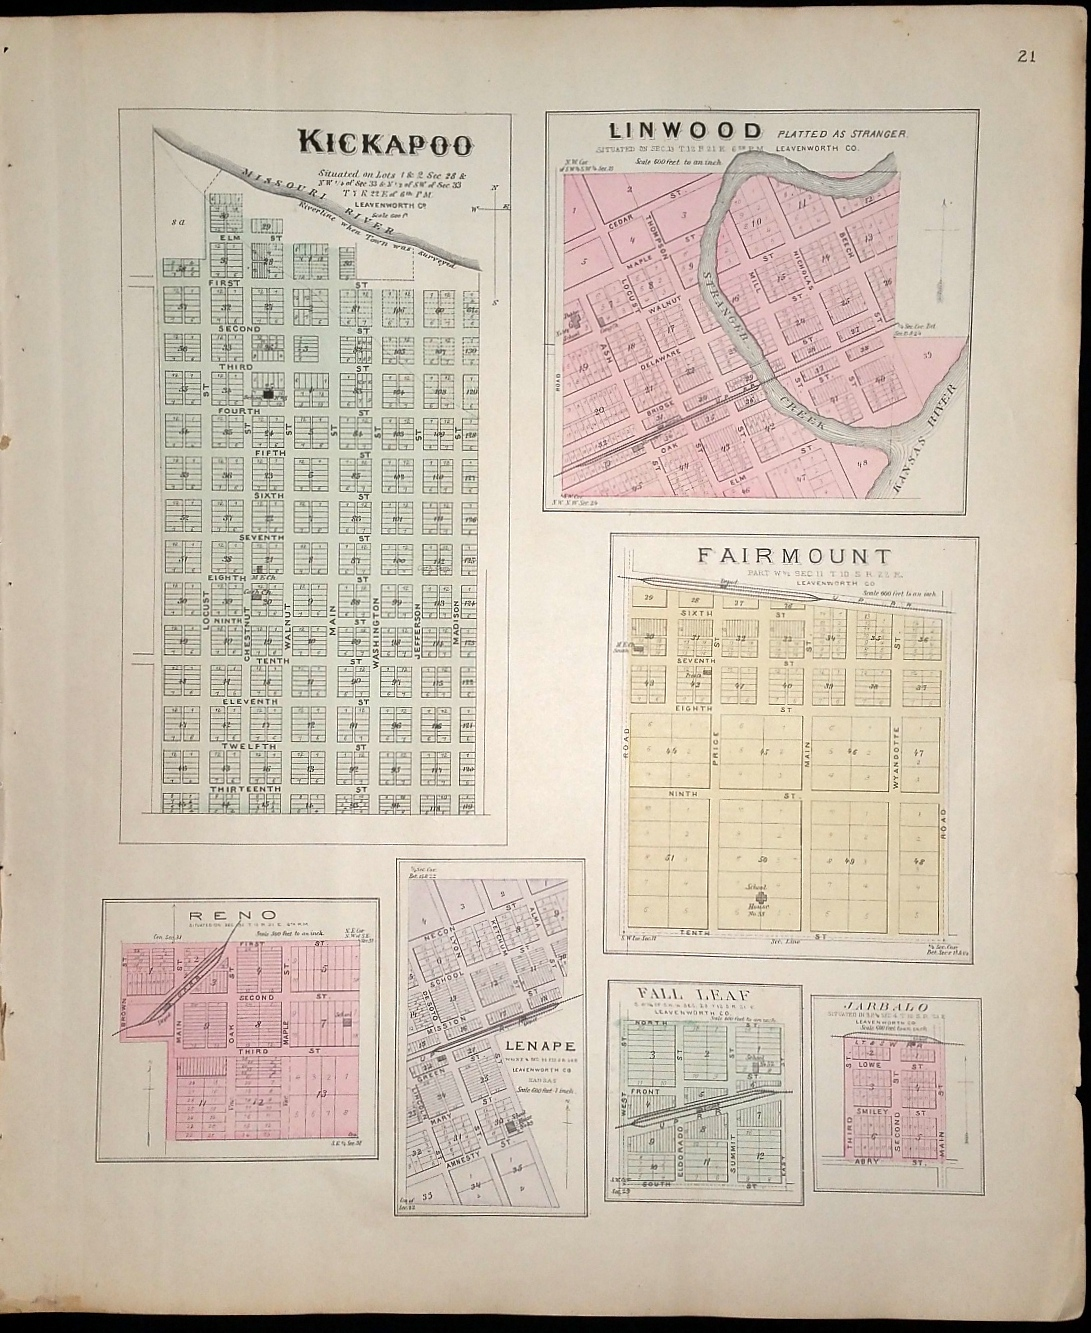 Image for [Map] Kickapoo, Linwood, Fairmount, Reno, Lenape, Fall Leaf, and Jarbalo (of Leavenworth County, Kansas) [backed with] Lansing and Progress, Easton, & Tonganoxie (of Leavenworth Co.), Severance (of Doniphan Co.), and Lecompton (of Douglas Co.)